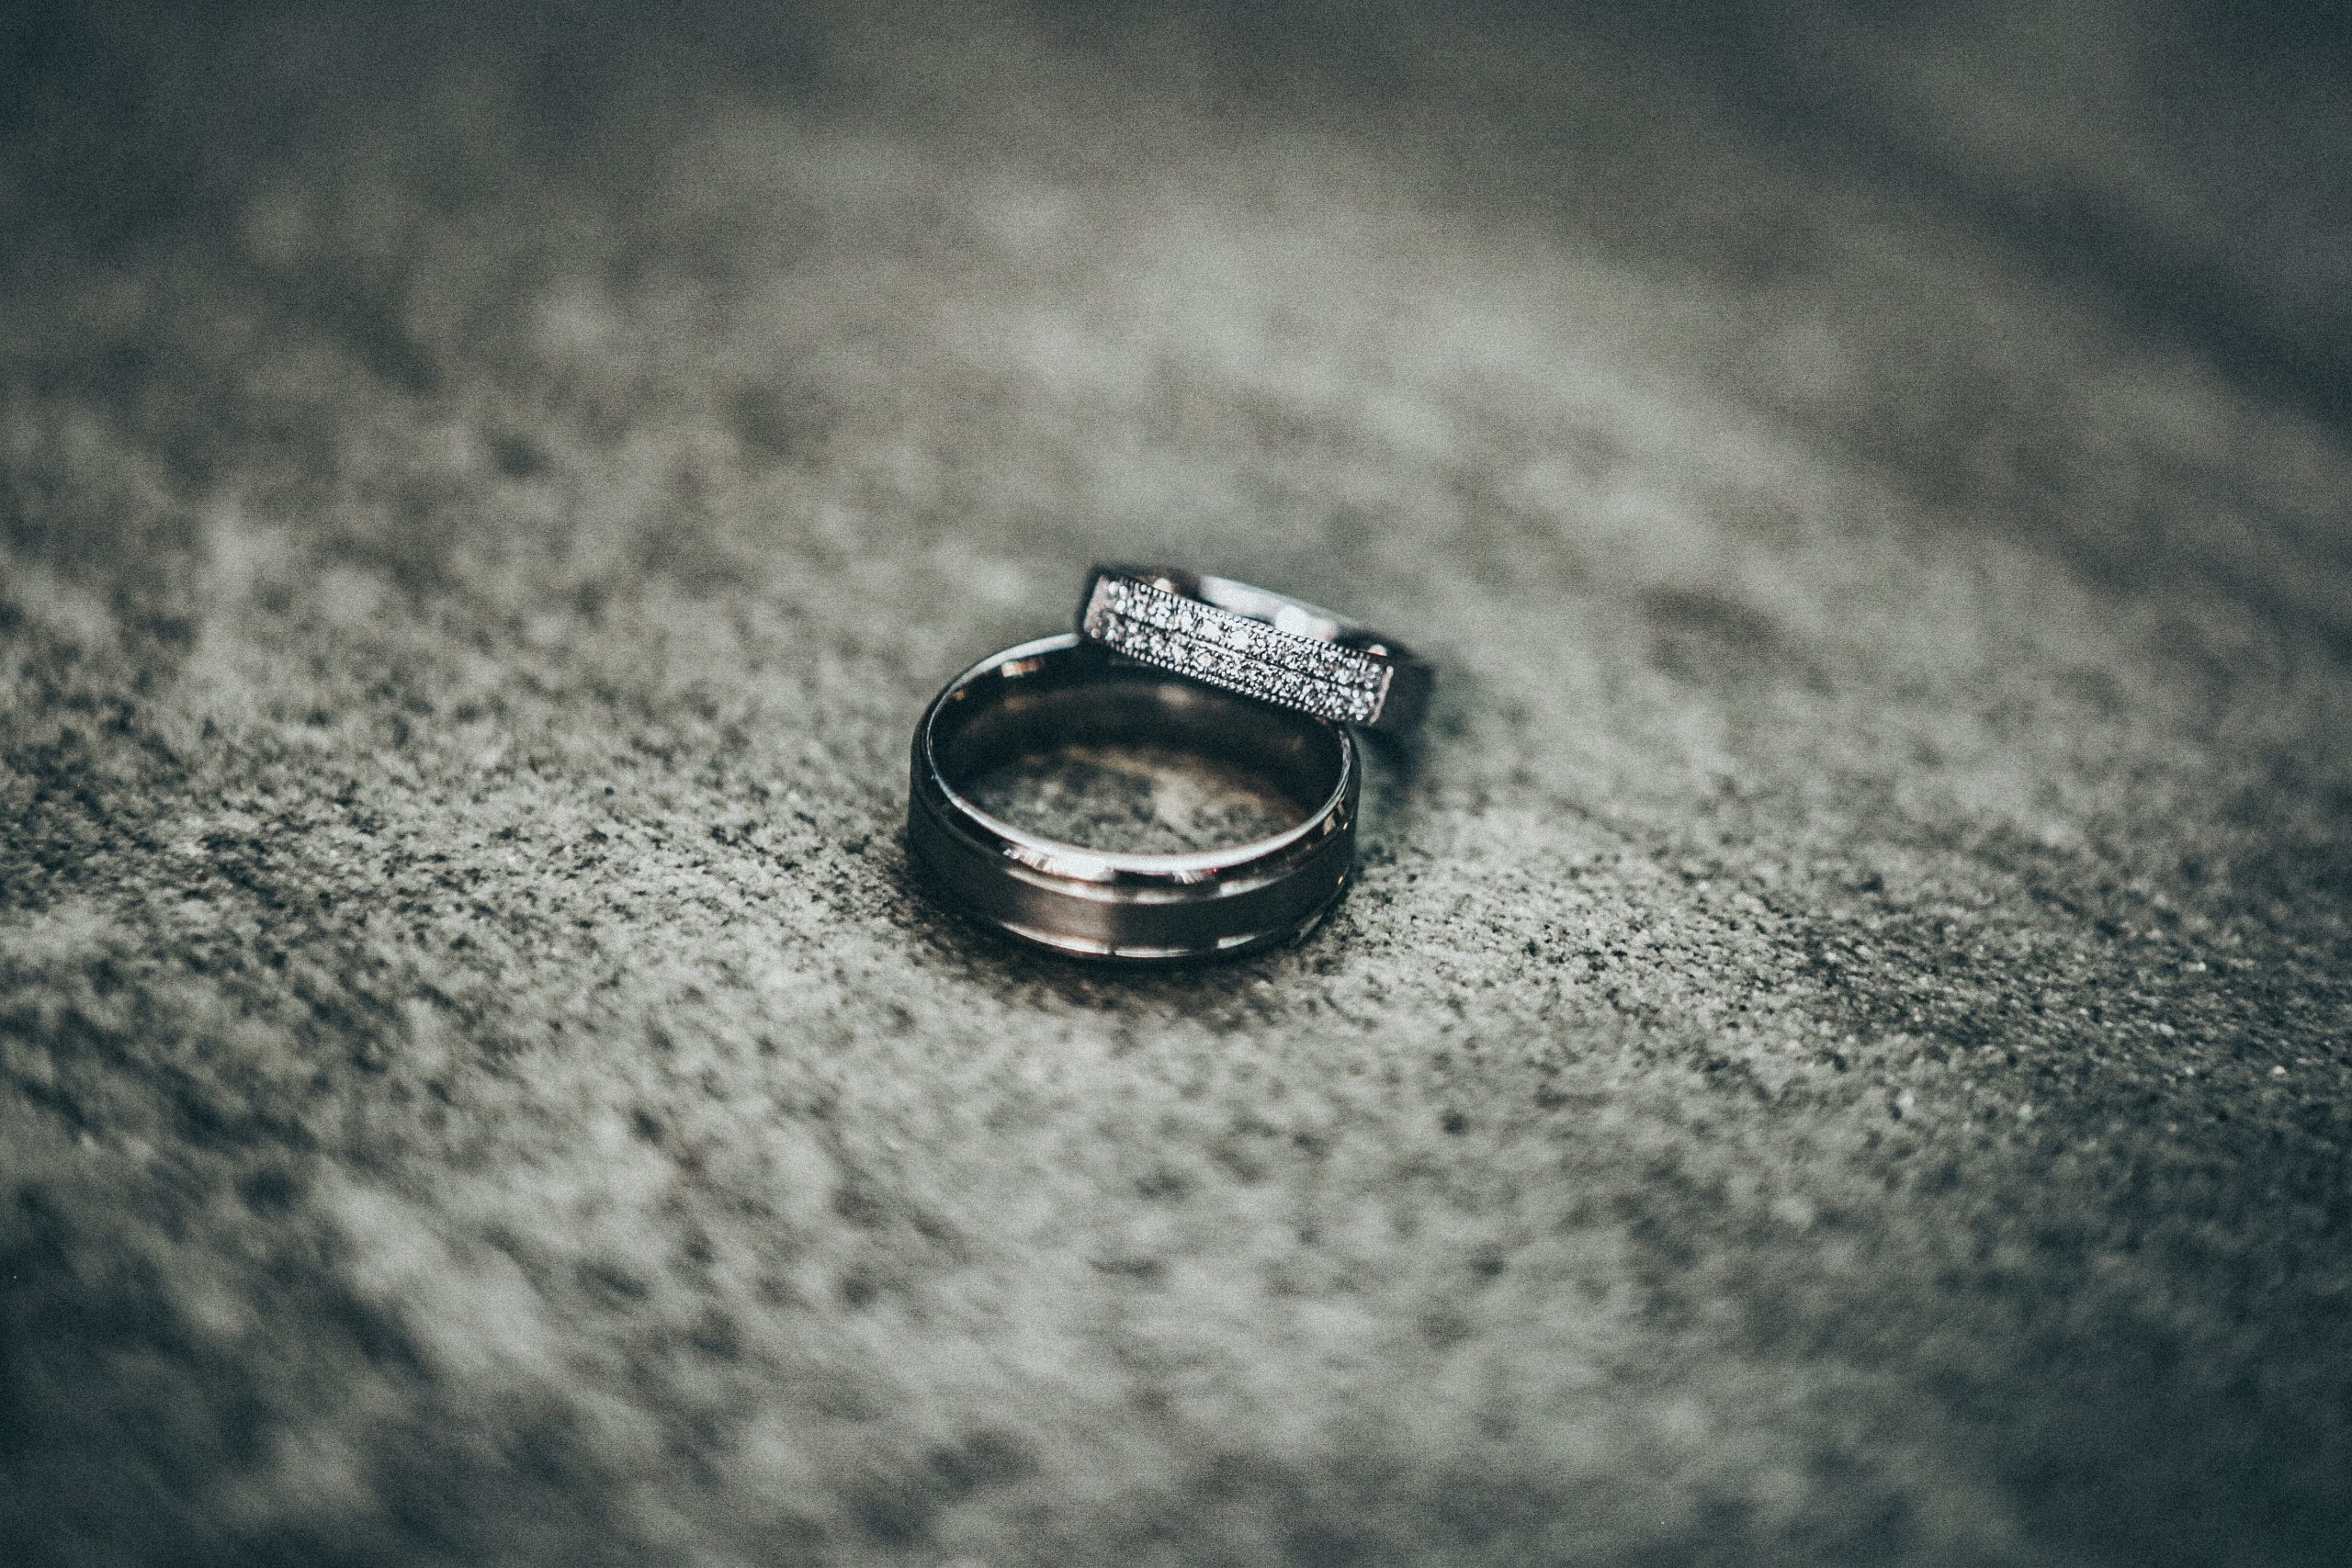 silver-colored rings on gray pavement